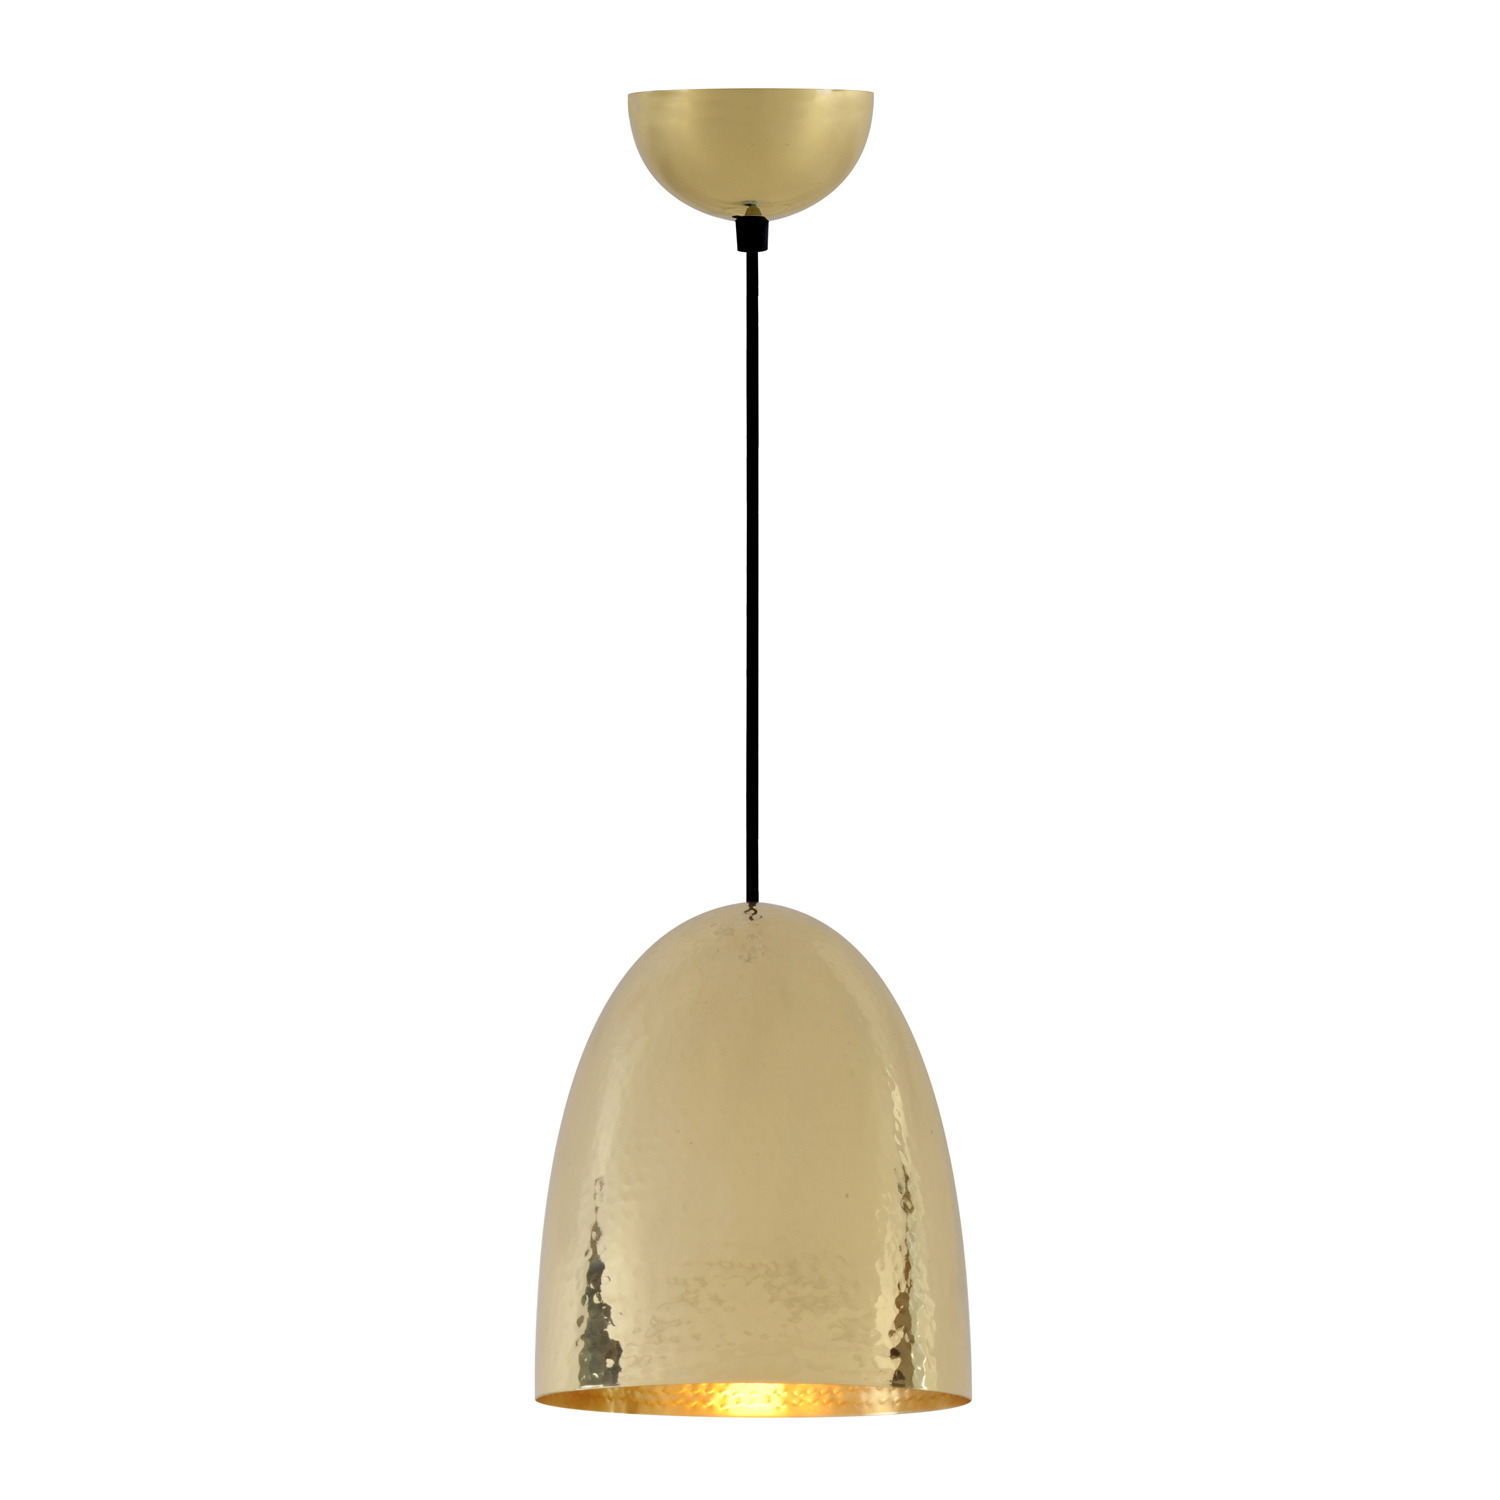 Stanley Medium Pendant Light, Hammered Brass